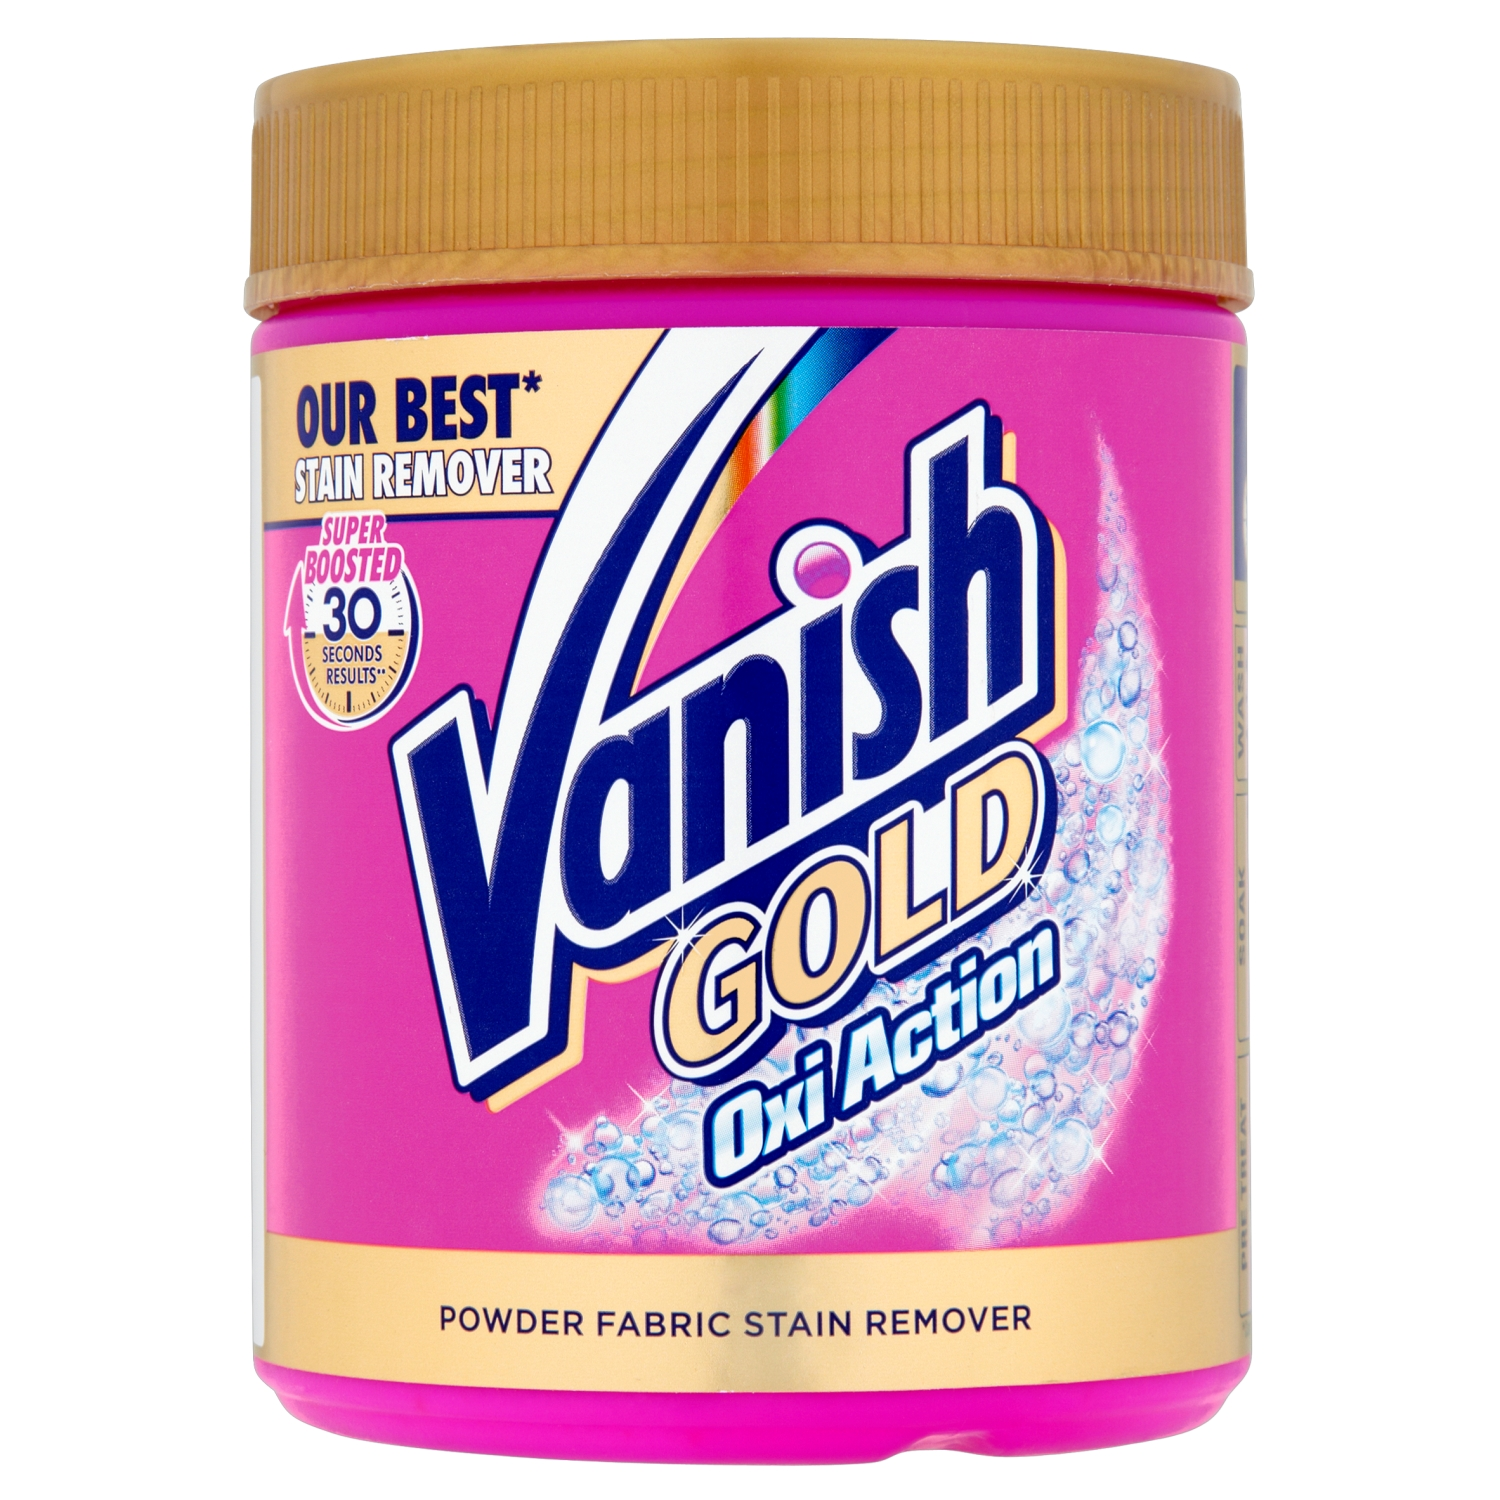 Vanish Gold Oxi Action Powder Stain Remover Vanish Uk